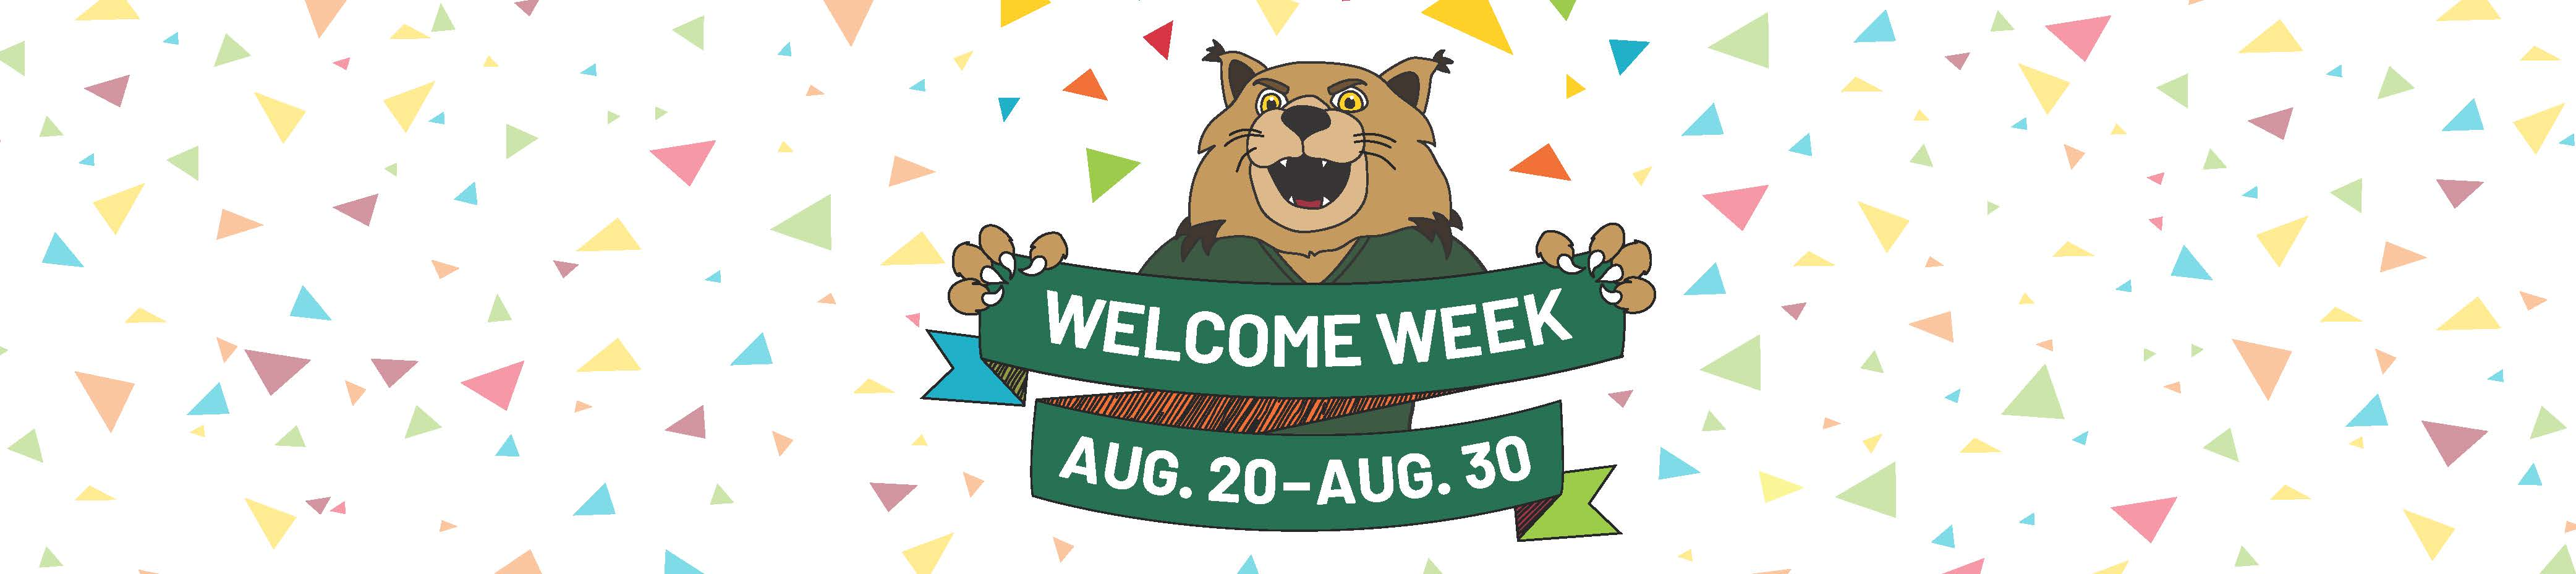 Welcome Week Web Banner